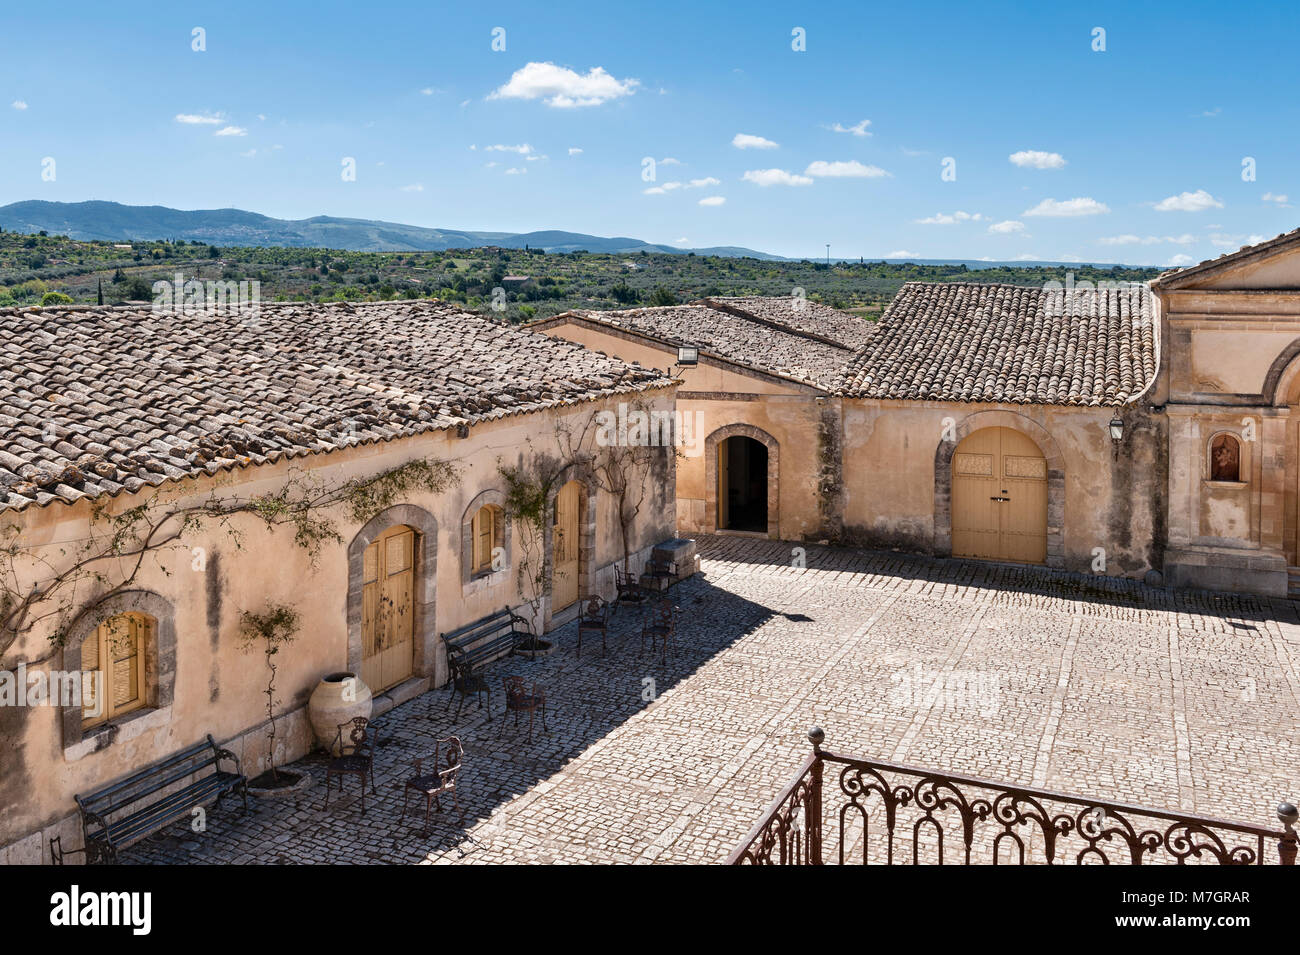 Chiaramonte Gulfi, Sicily, Italy. Villa Fegotto (used as a location for the Inspector Montalbano TV series) - Stock Image